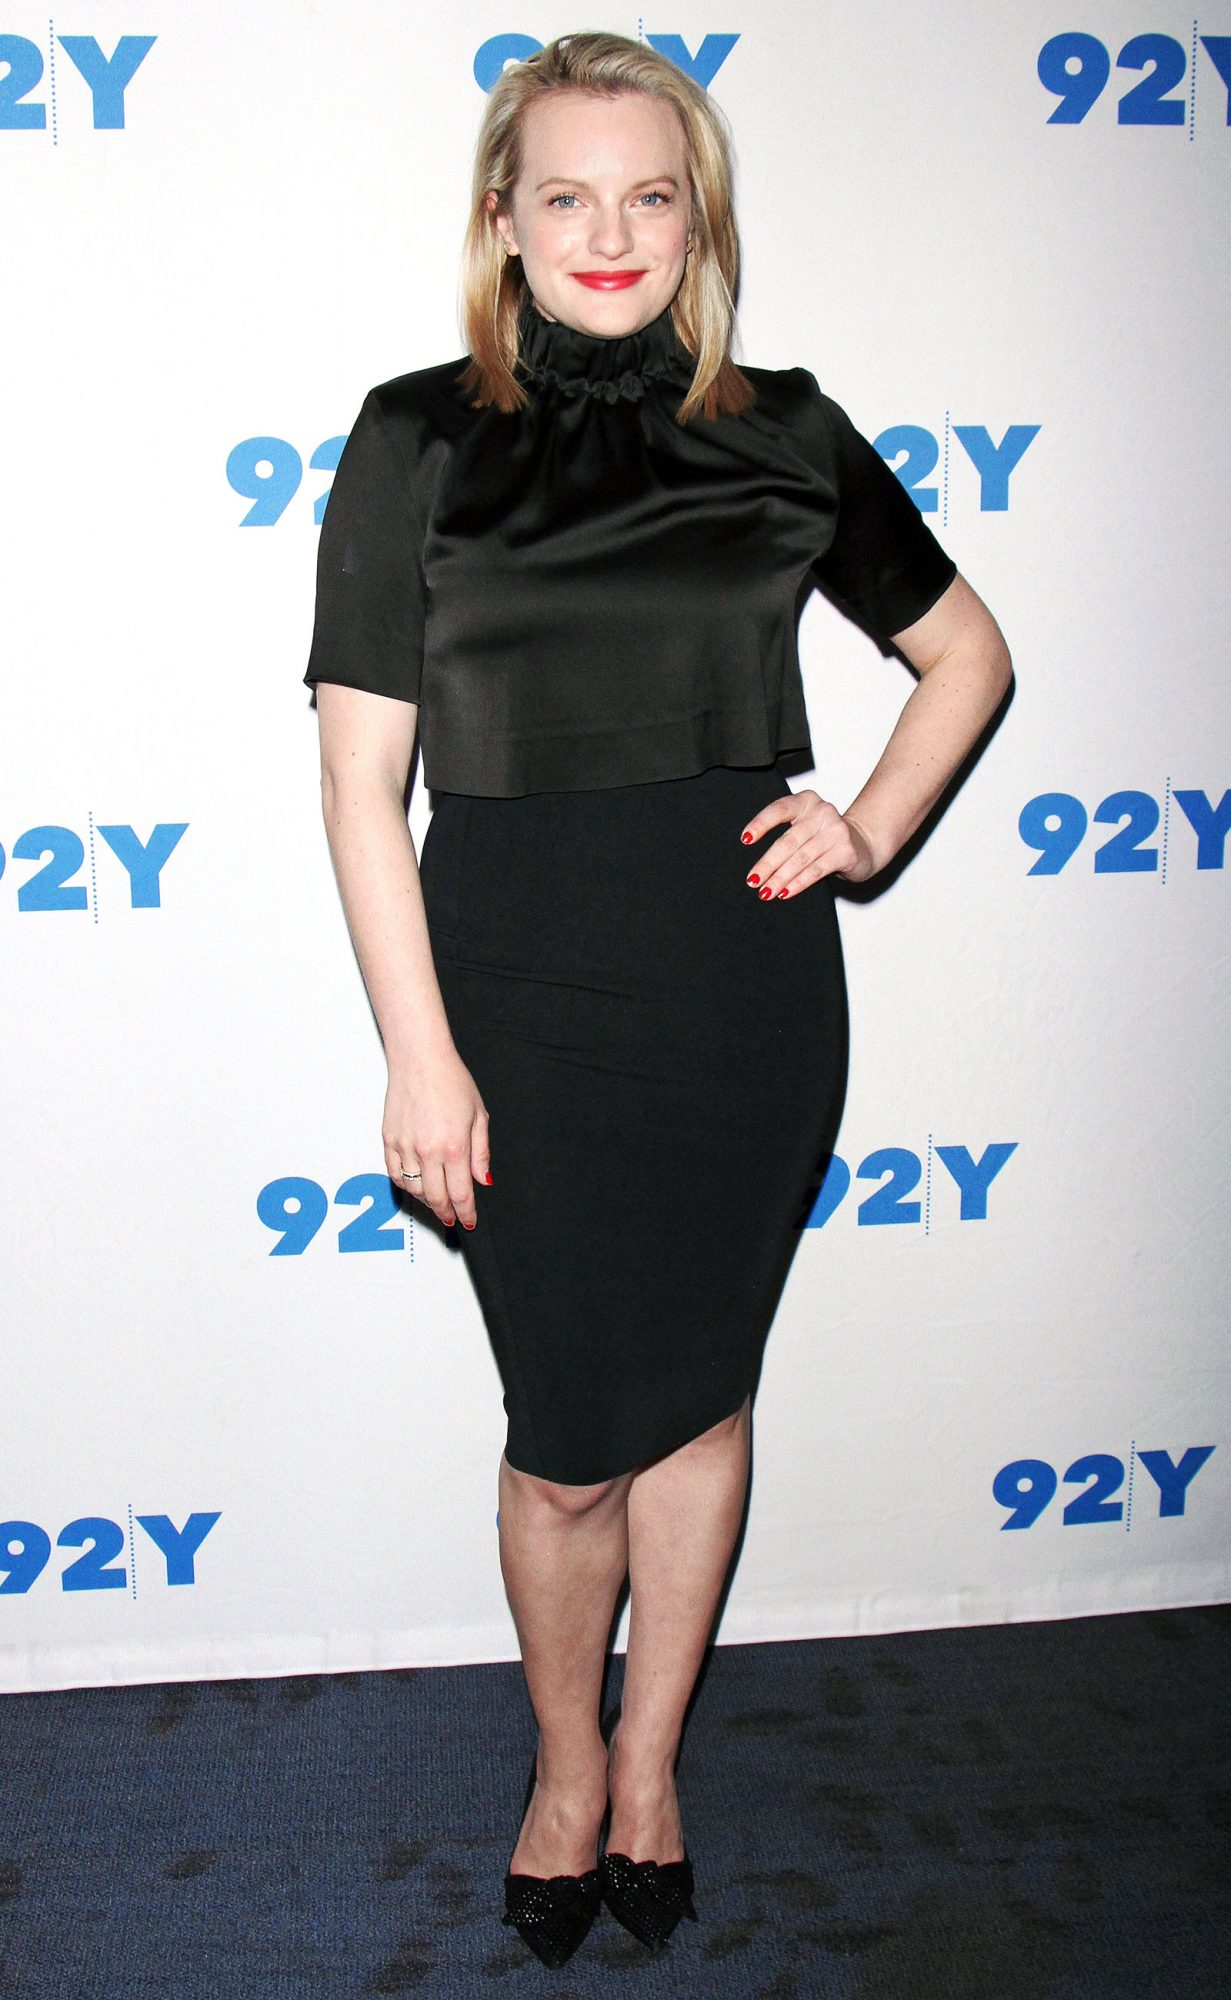 The Cast of The Handmaid's Tales Visit 92Y